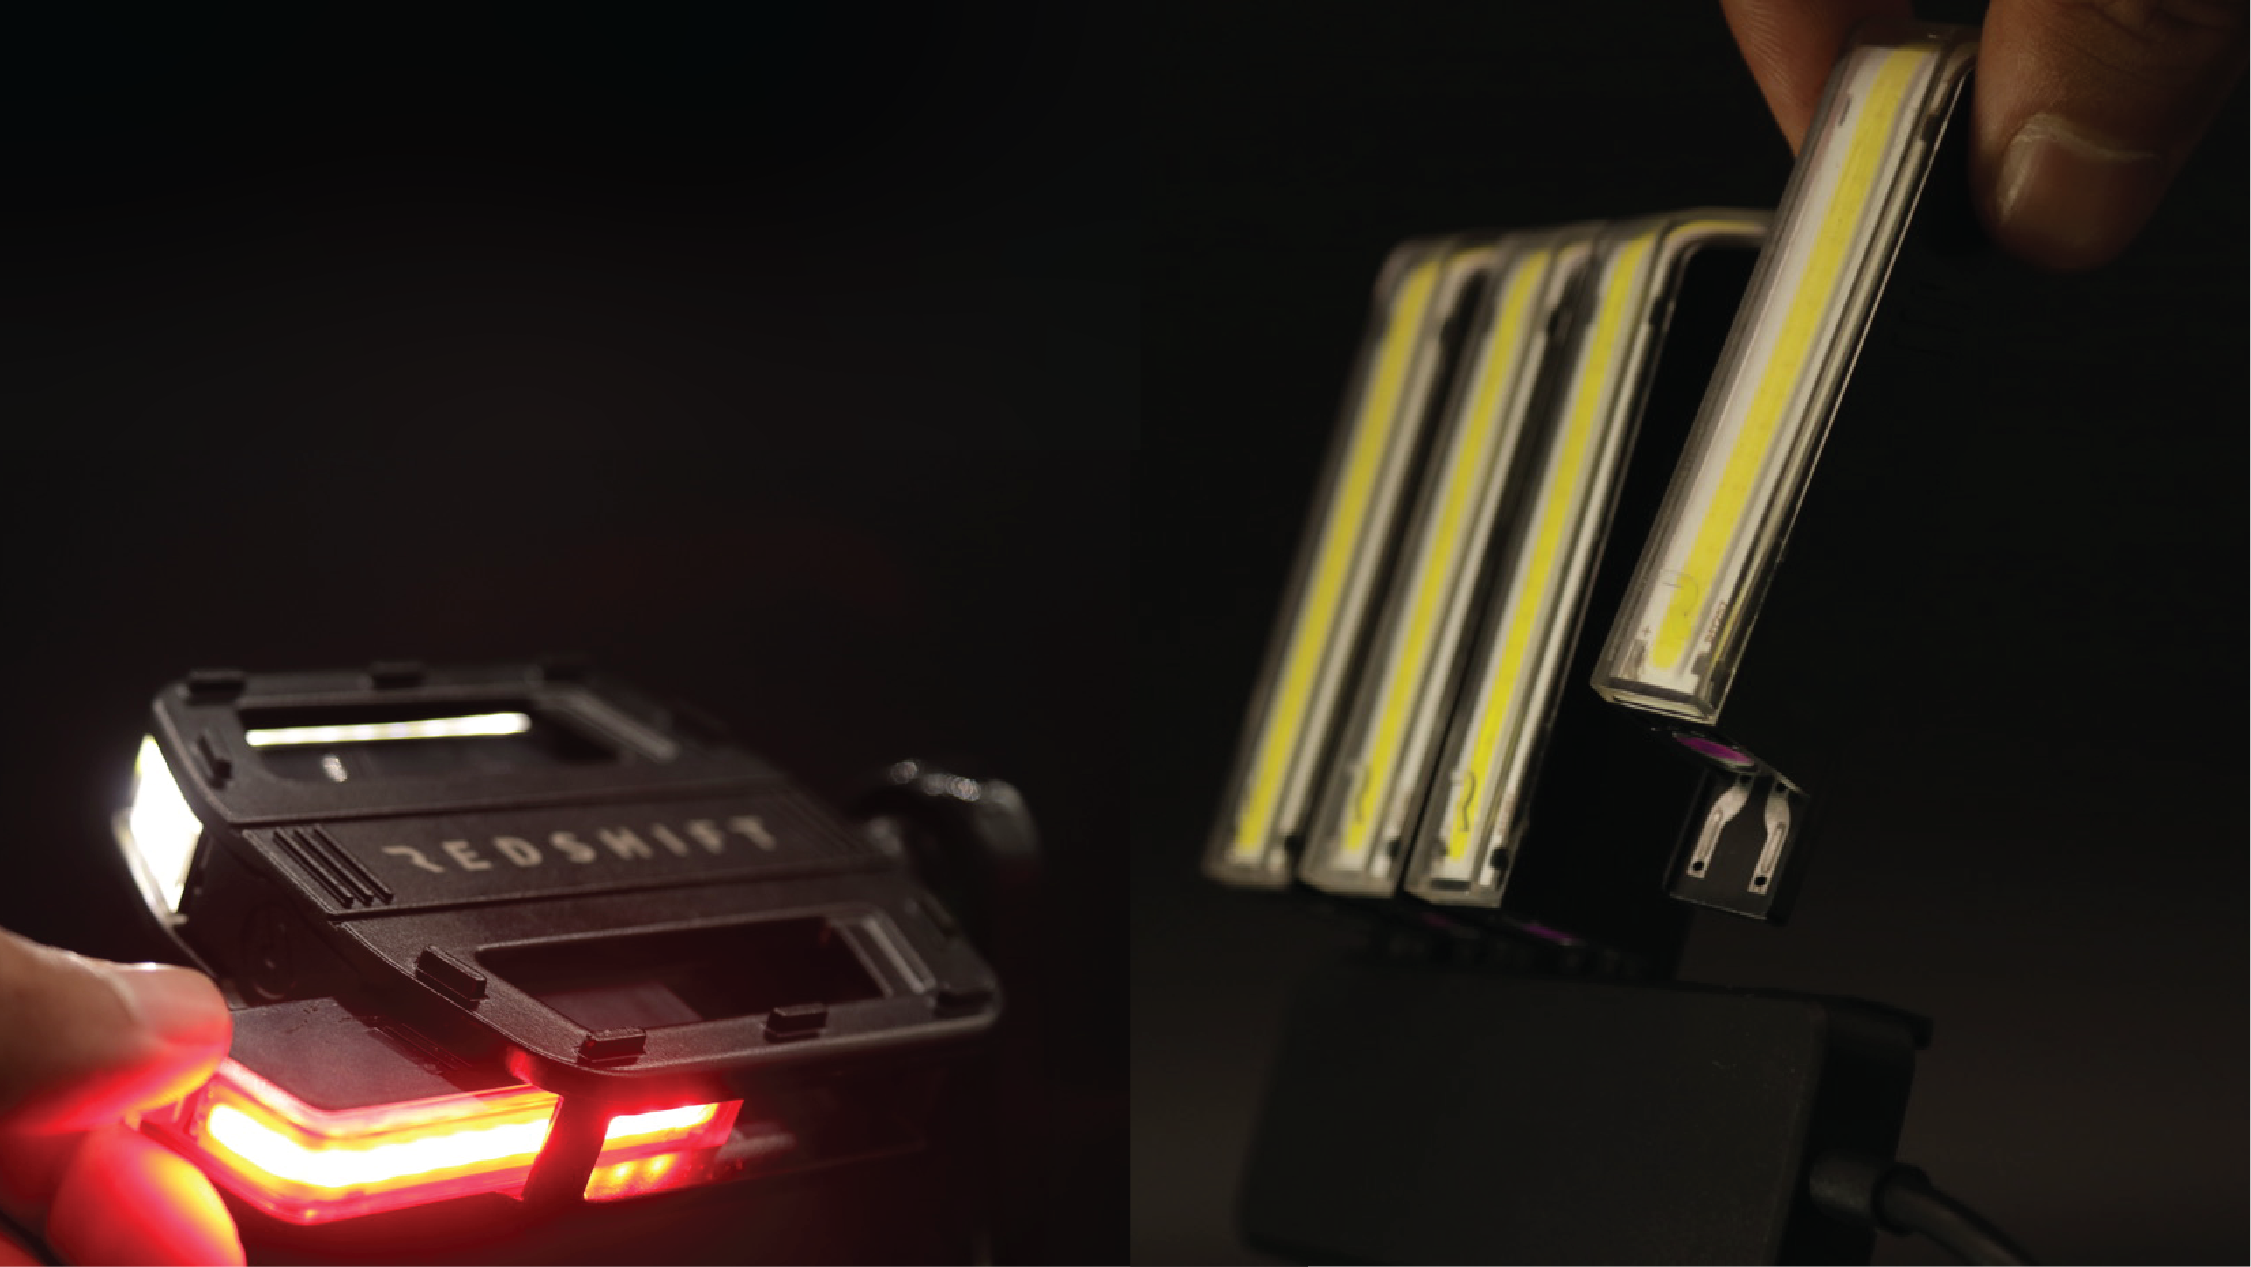 Redshift's LED Arclight Pedals - design